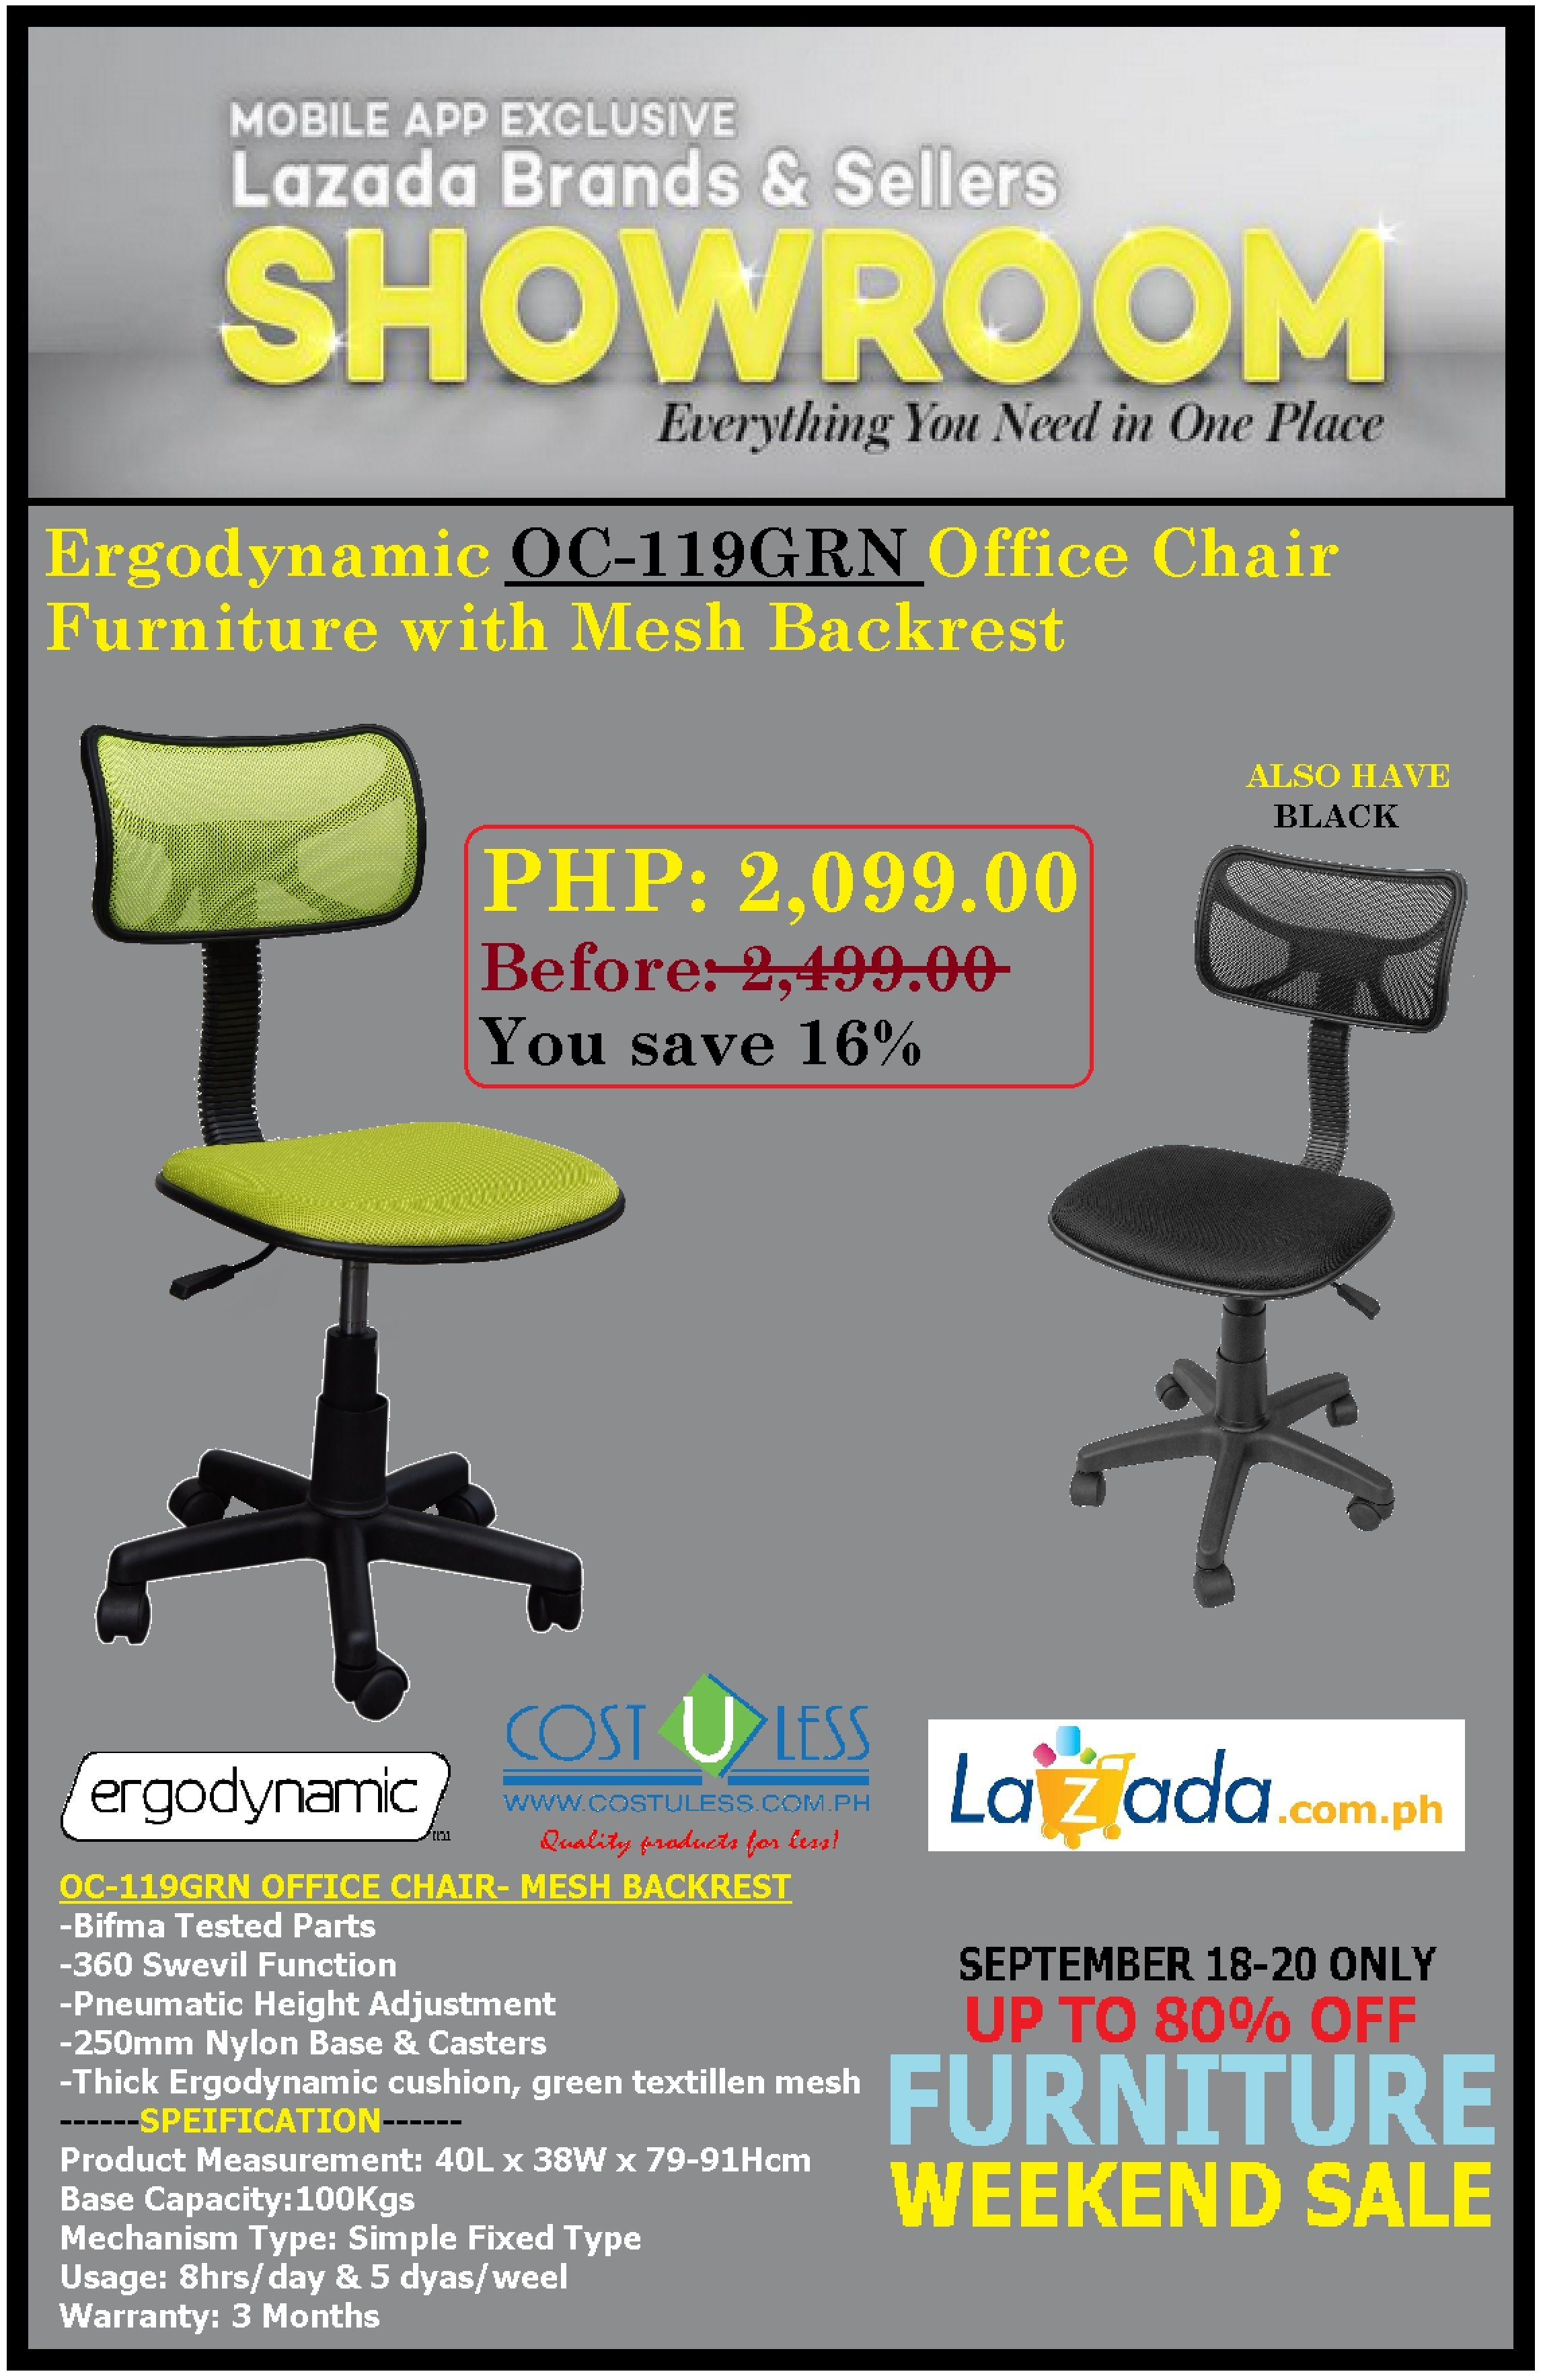 OFFICE FURNITURE SALE @LAZADAu0027S BRANDS U0026 SELLERS SHOWROOM PROMO! SAVE Up To  80% OFF DISCOUNT On COSTULESS OFFICE CHAIRS! PROMO Is EXCLUSIVE On LAZADA  MOBILE ...